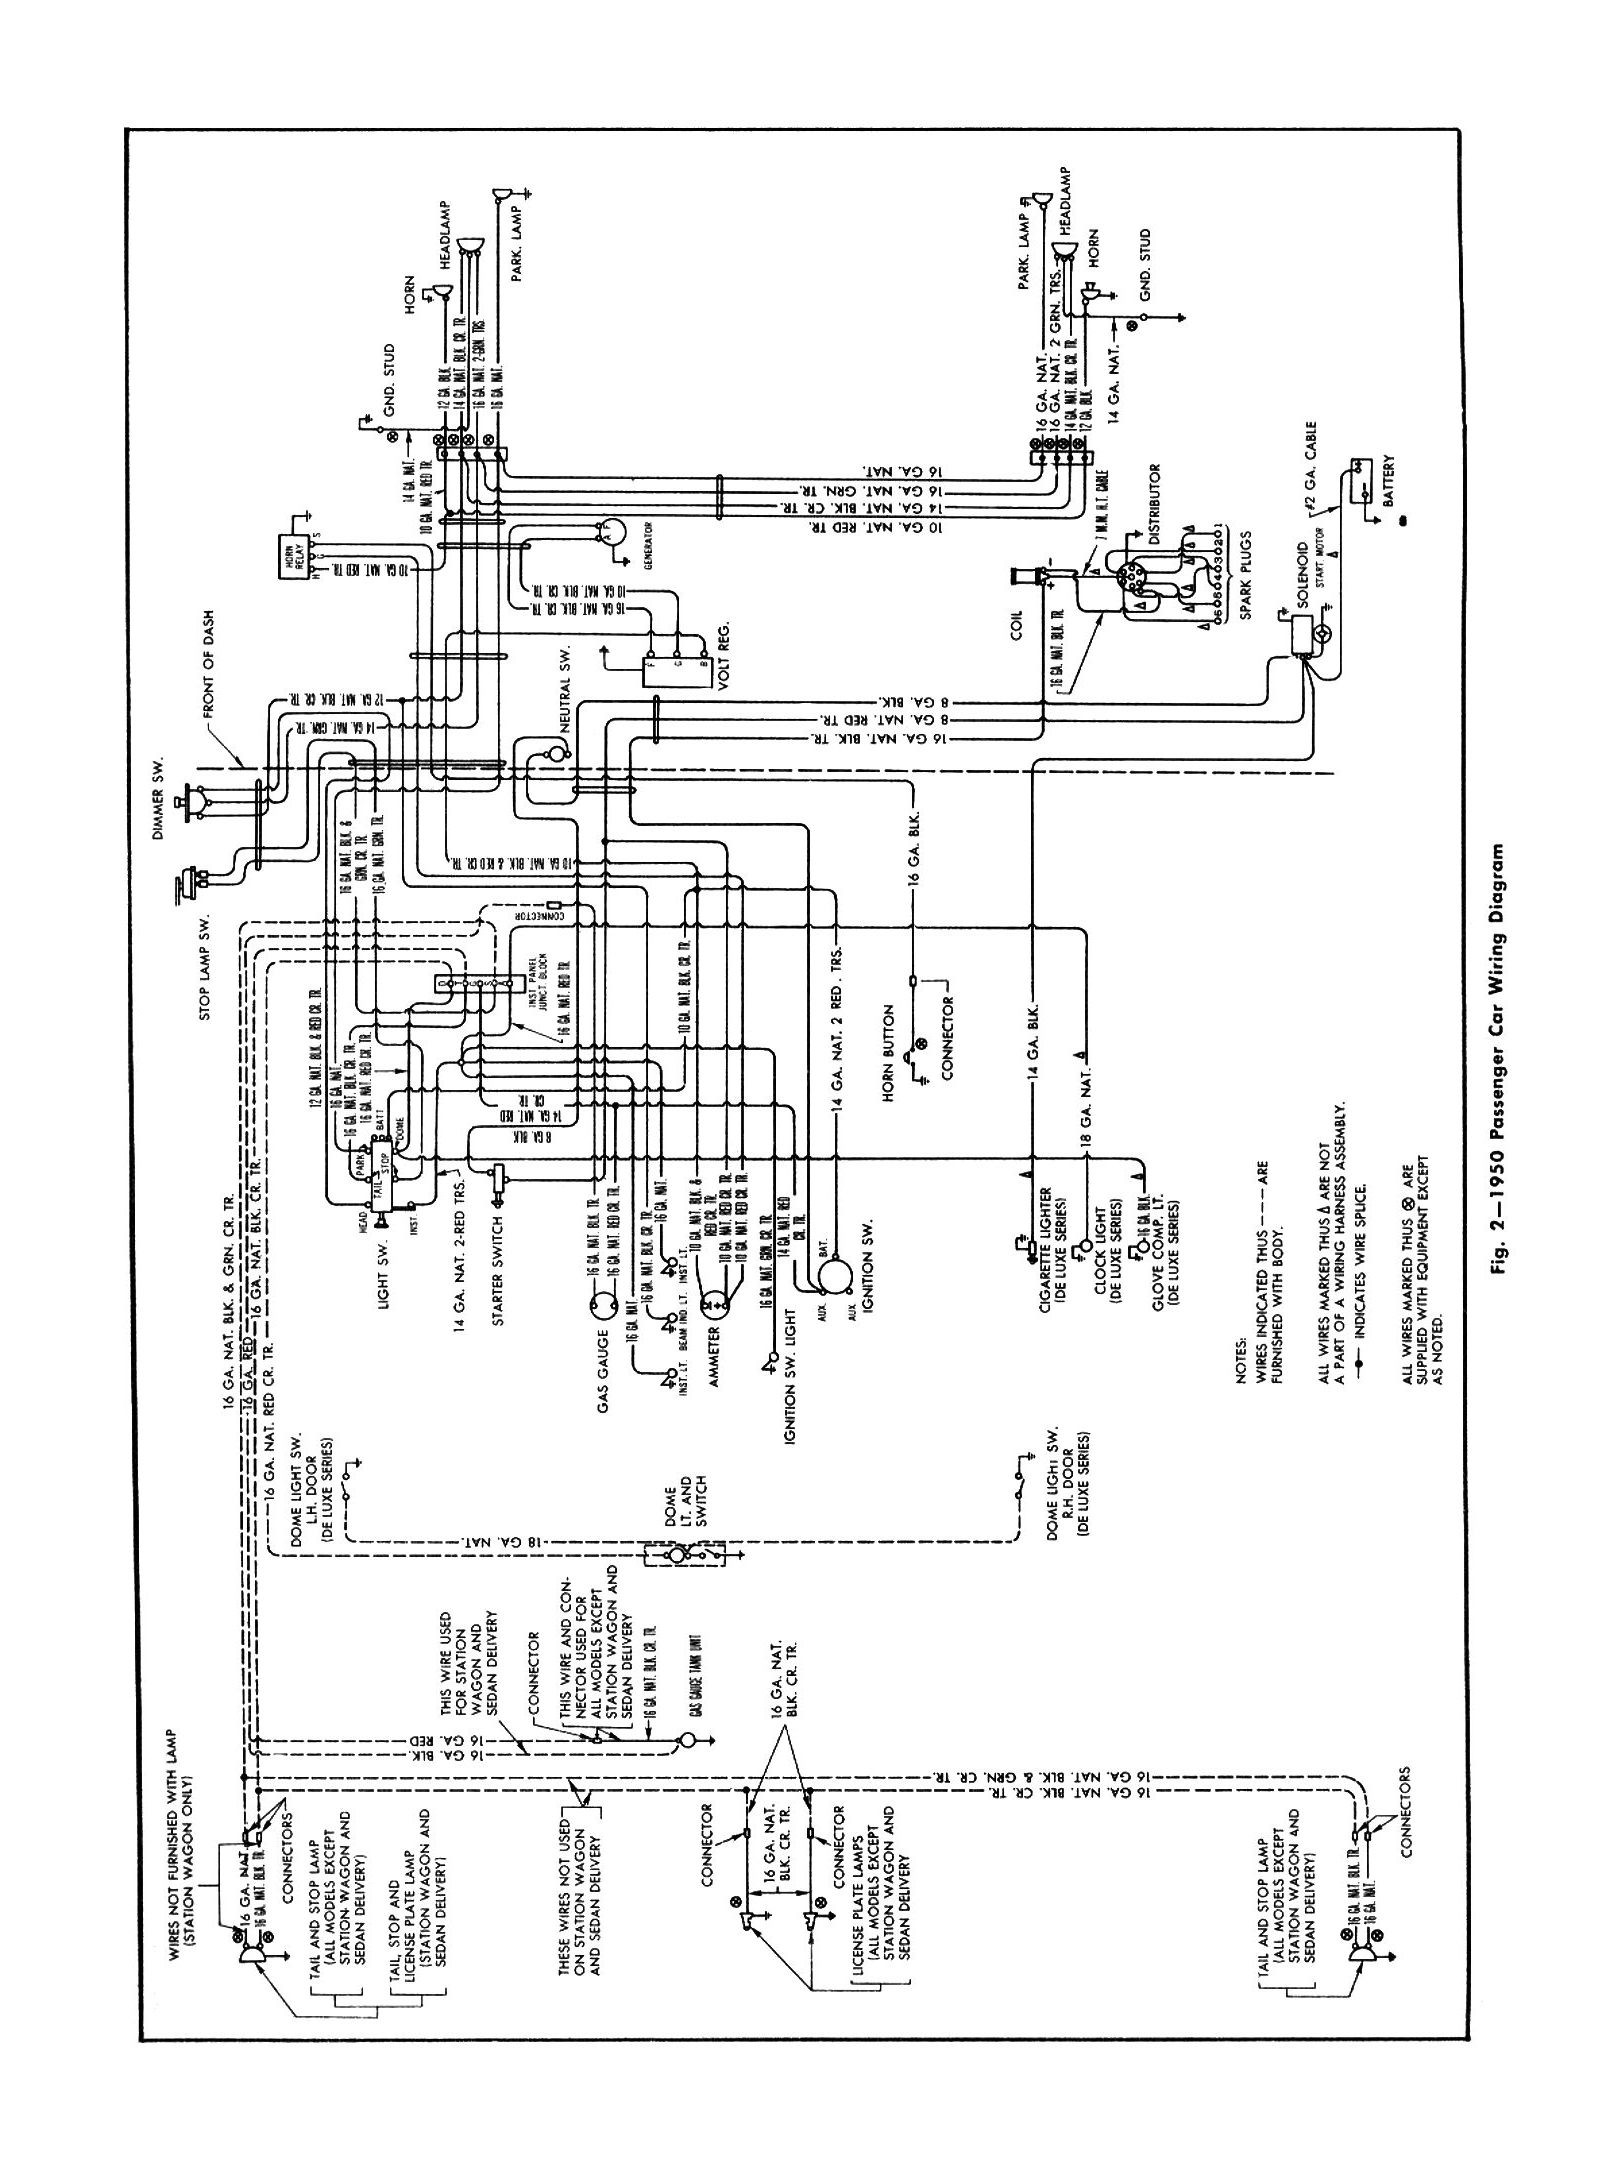 52 cadillac wiring diagram 1952 chevy truck turn signal wiring diagram 1952 free #3